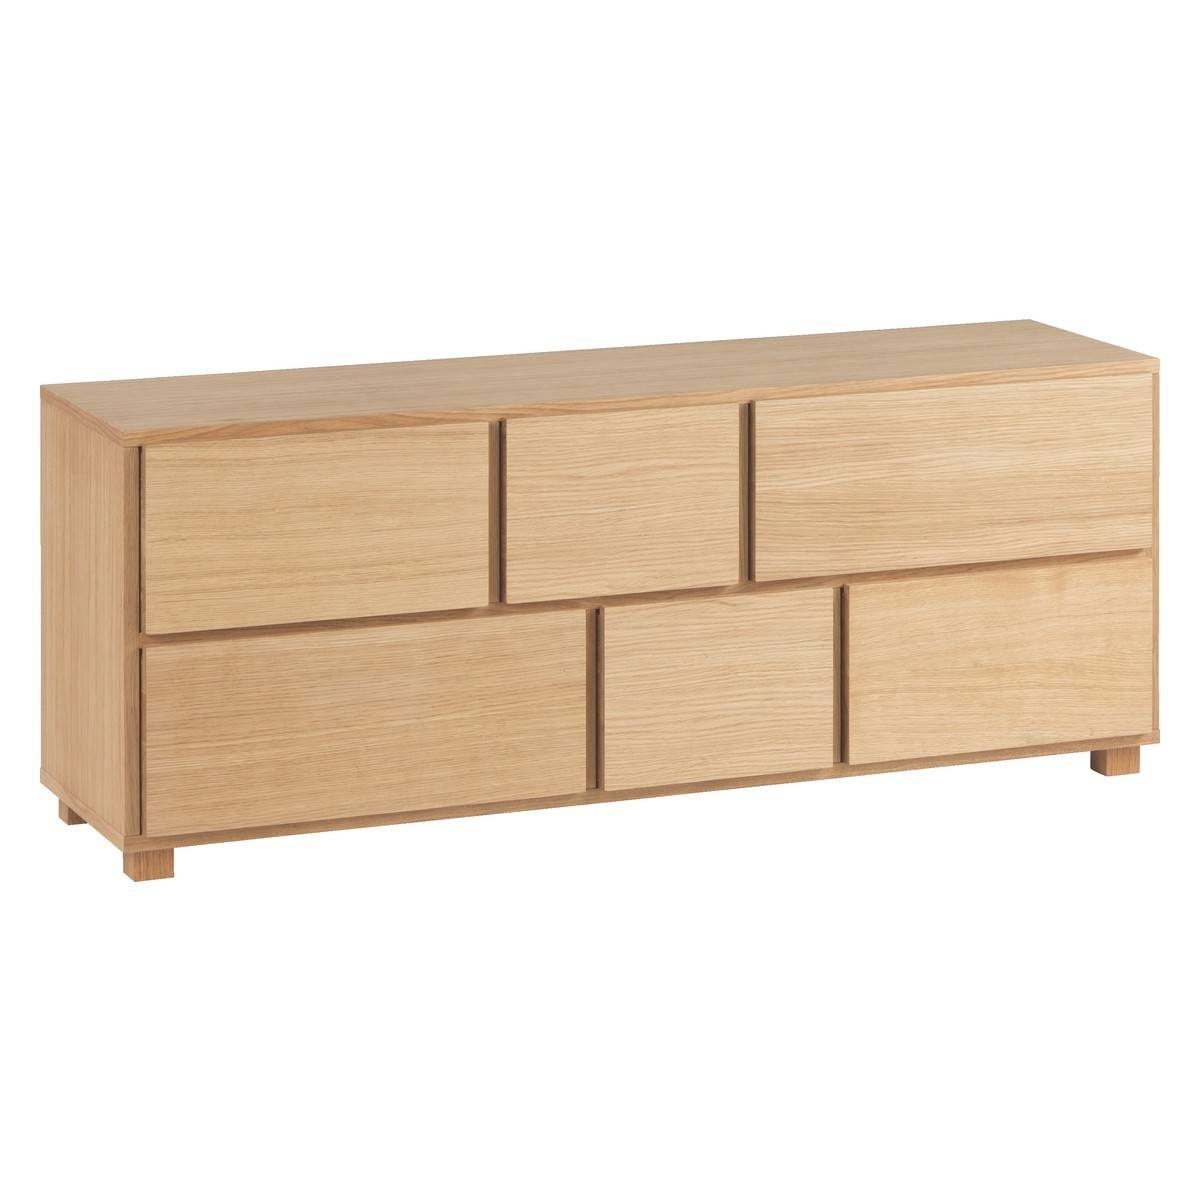 Hana Ii Oiled Oak 6 Drawer Low Wide Chest | Buy Now At Habitat Uk Pertaining To 2017 Low Wide Sideboards (#8 of 15)